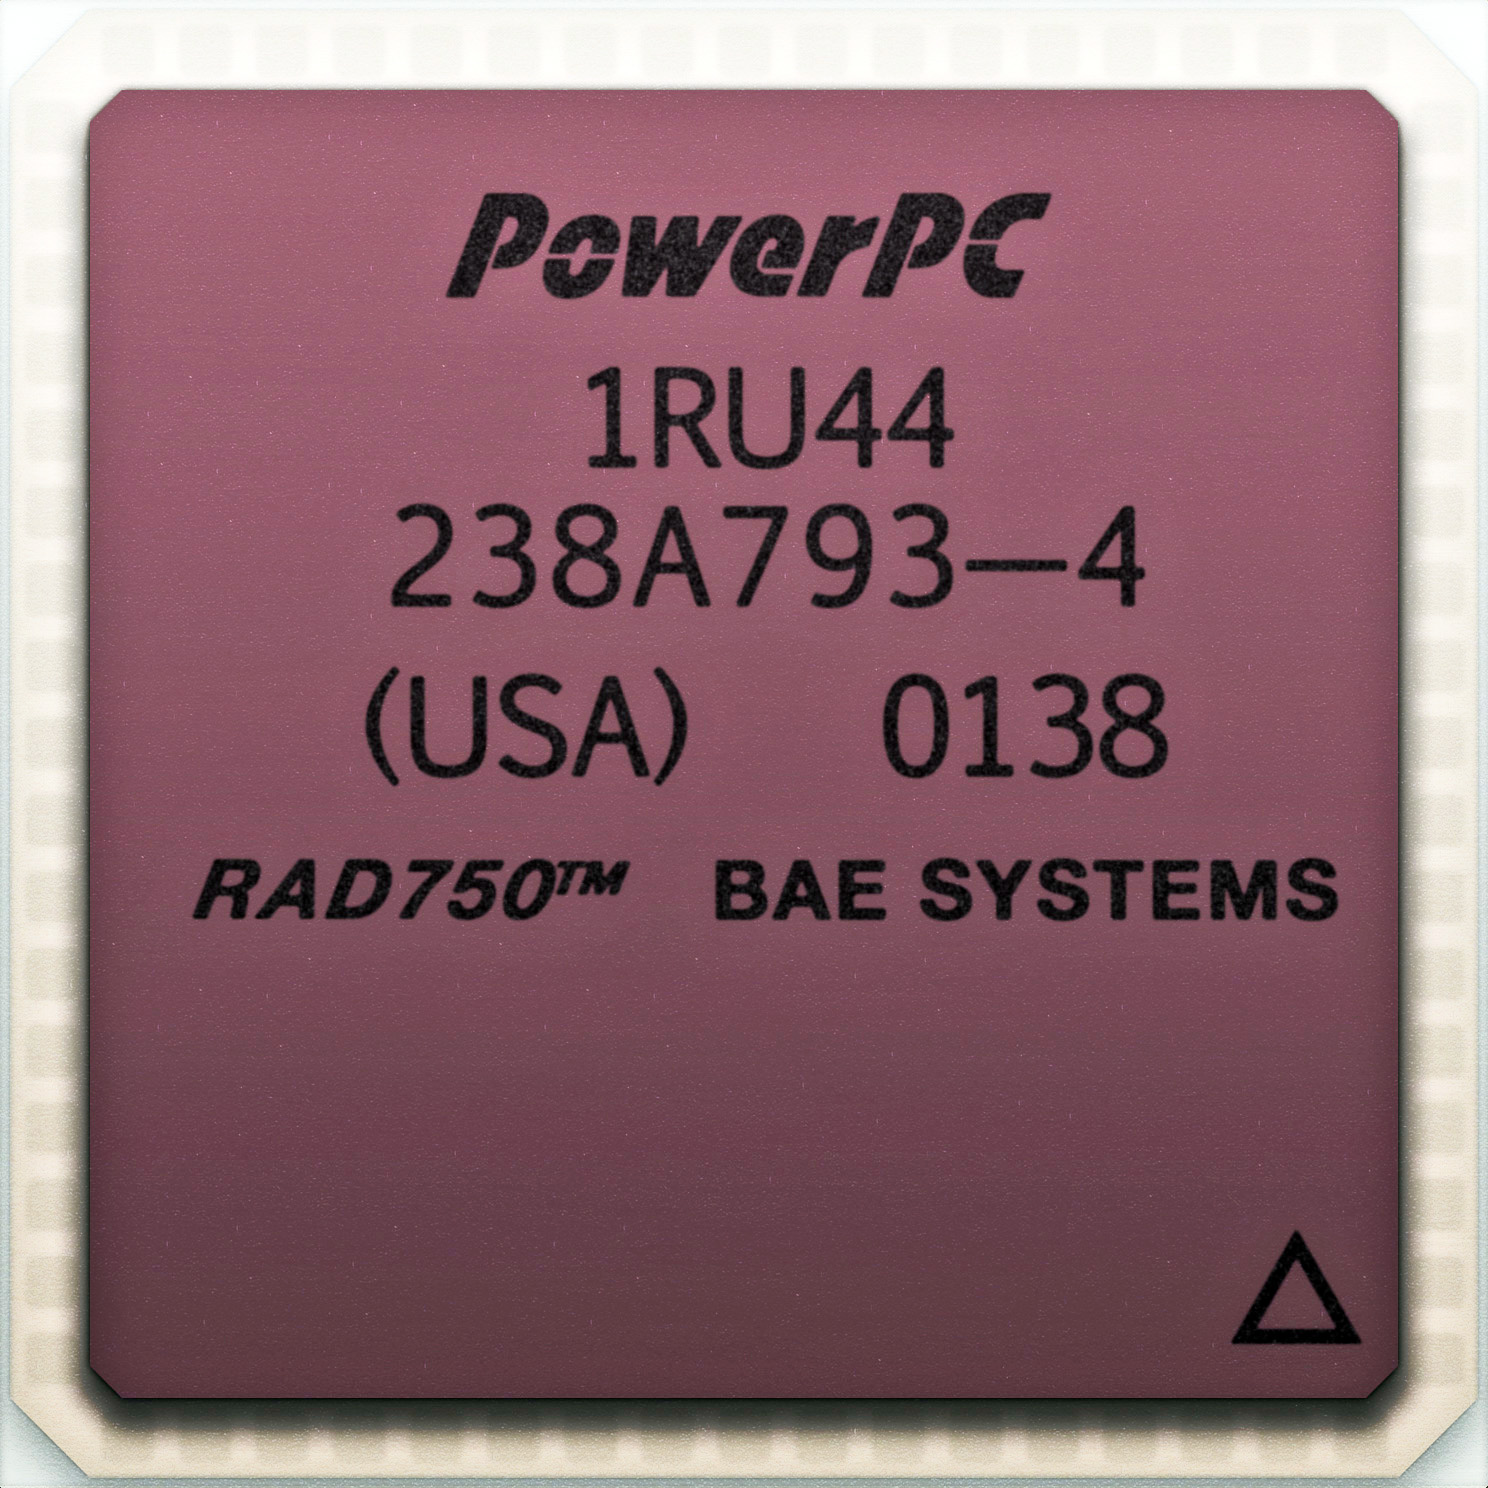 RAD750 radiation-hardened PowerPC space microprocessor